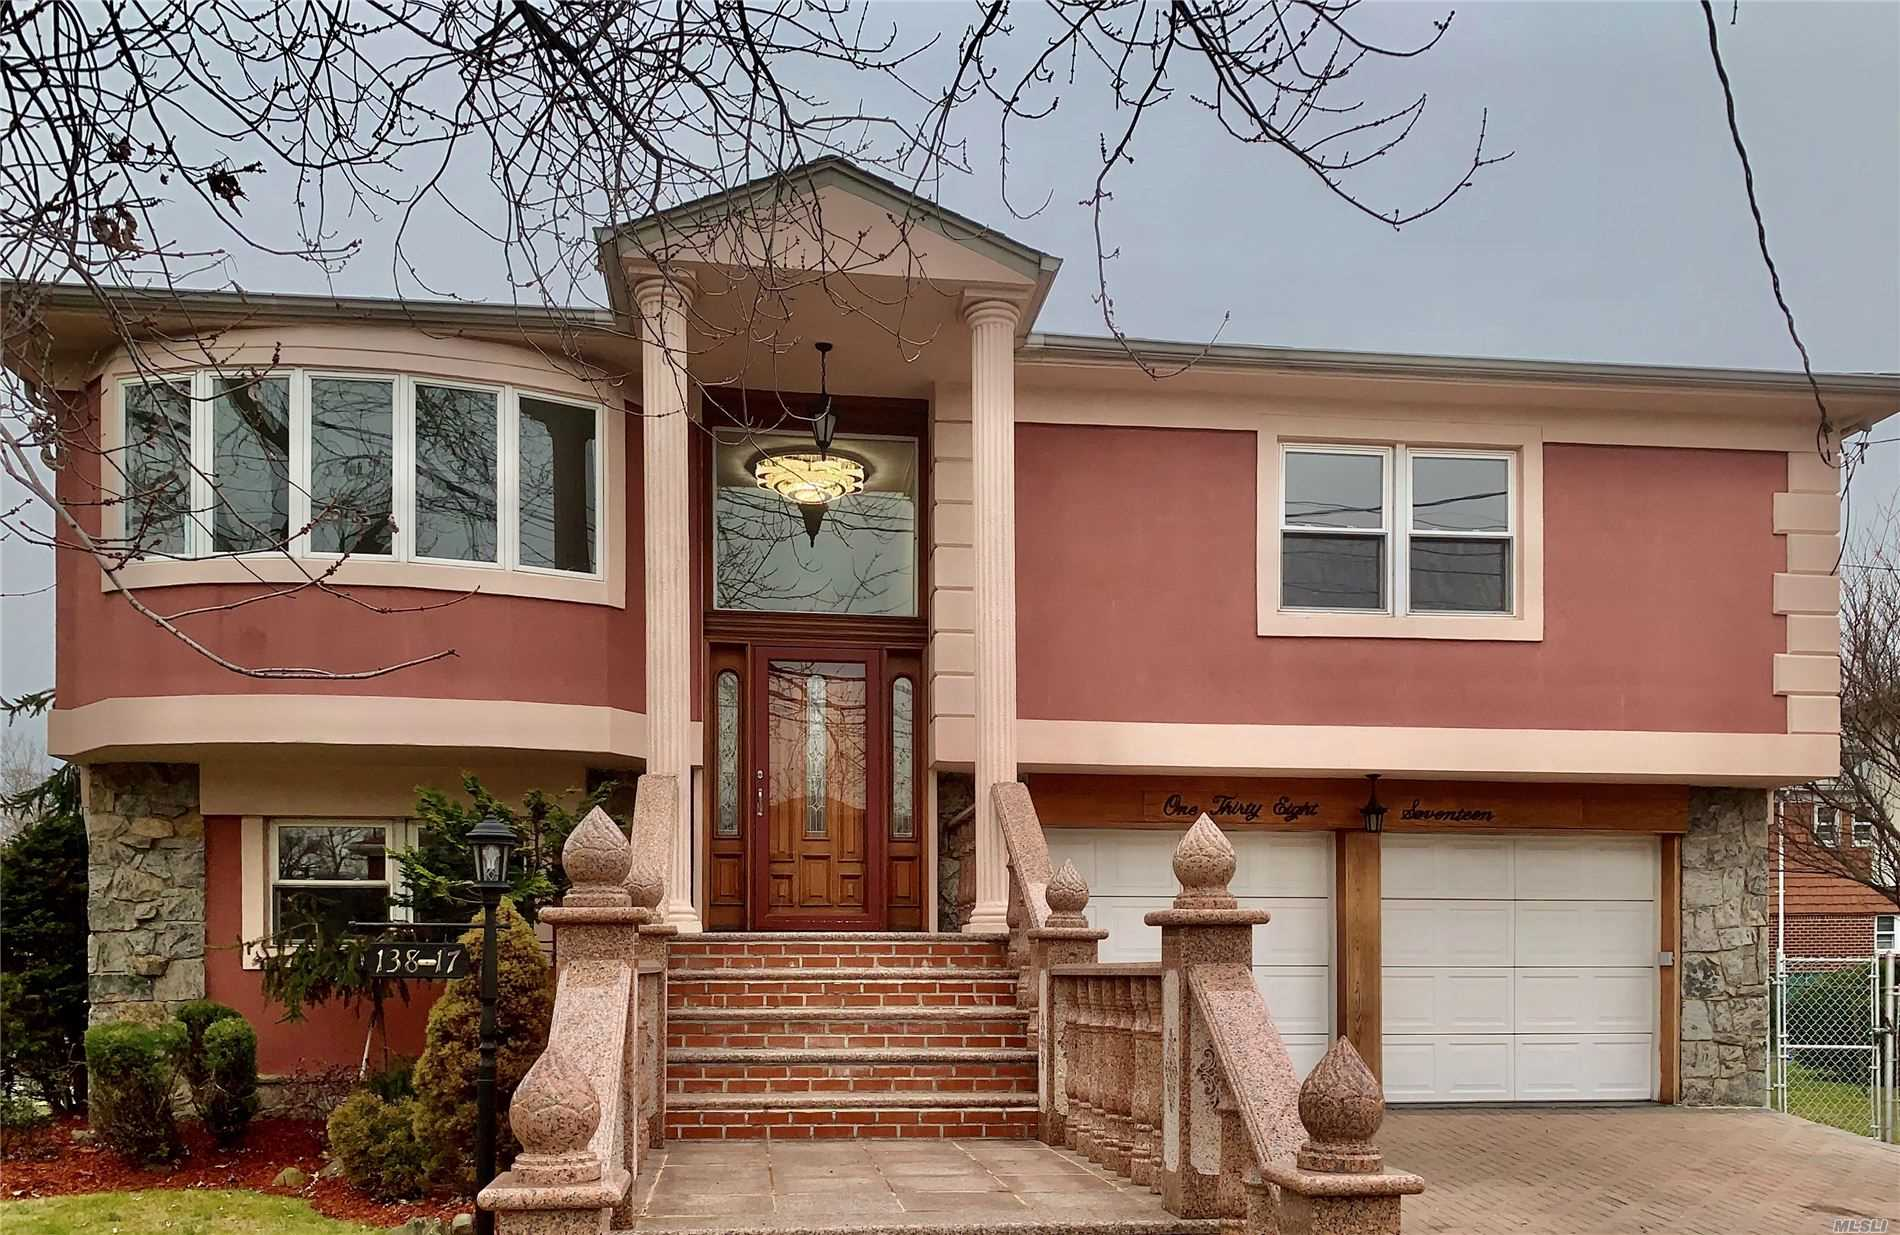 Fantastic 1 Family Located In The Enclave Of Malba.  Totally Renovated. House Boasts 3 Bedrooms + 3 Full Bath. 2 Car Garage, Deck, Patio.